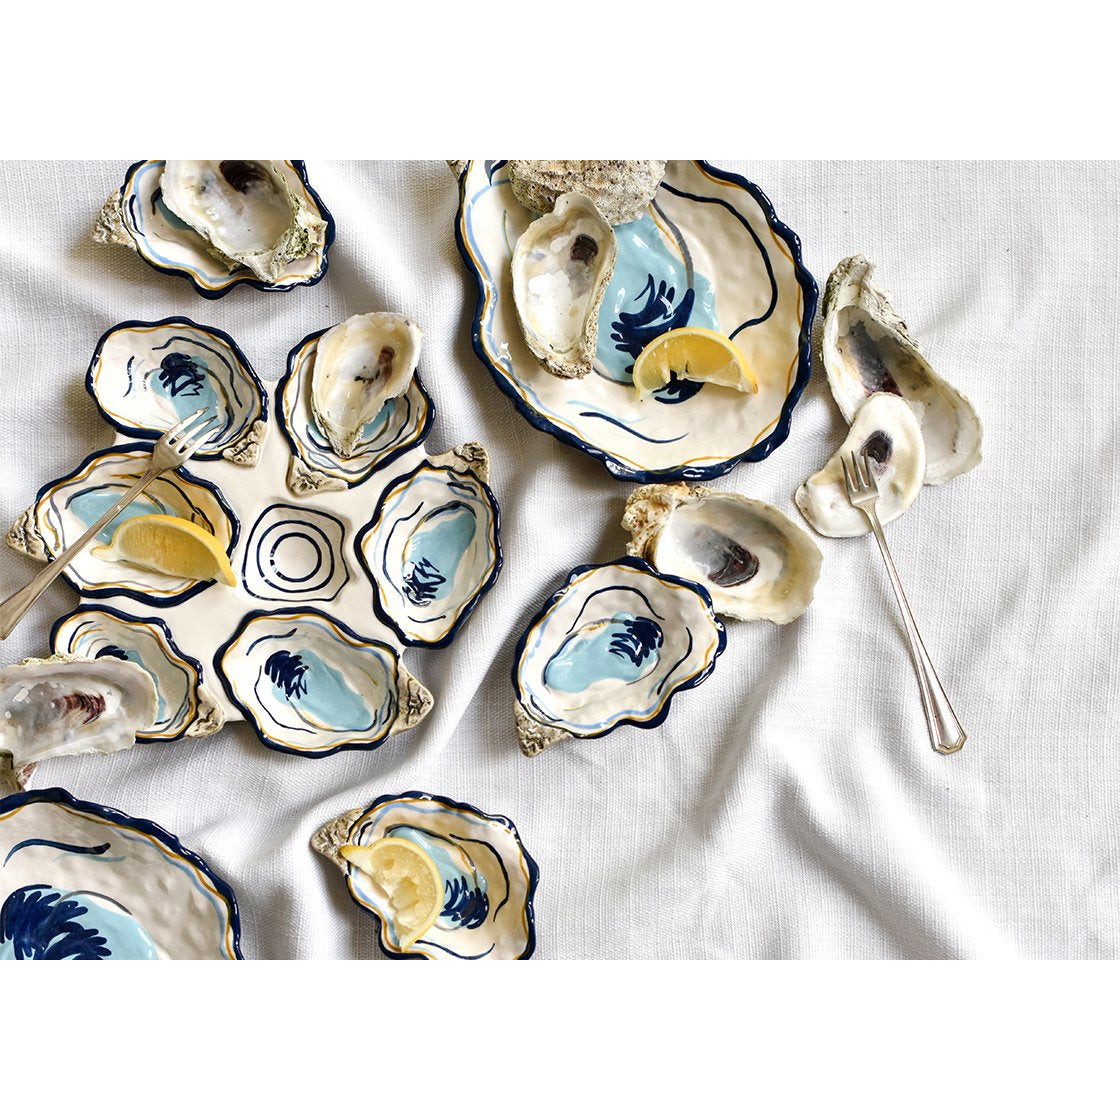 Coton Colors -  Oyster Shaped Plate  in groups with other oyster plates